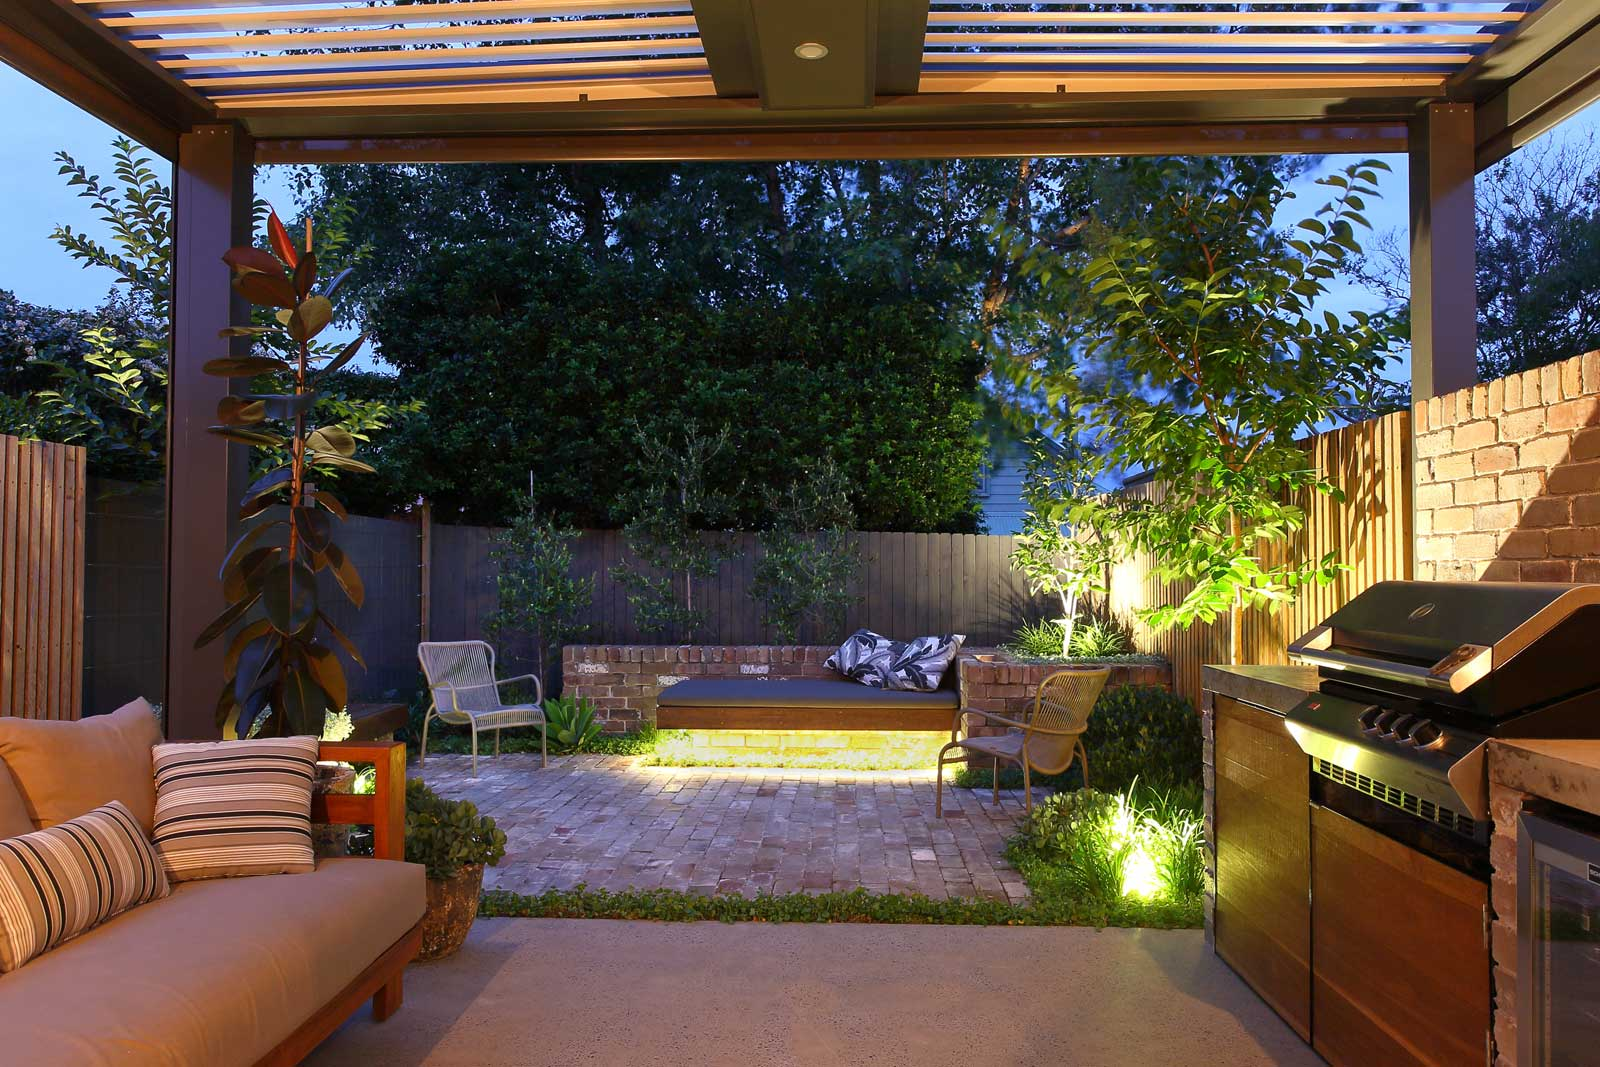 Award-Winning Landscape Designers Sydney - Landscape ... on Bespoke Outdoor Living id=97997